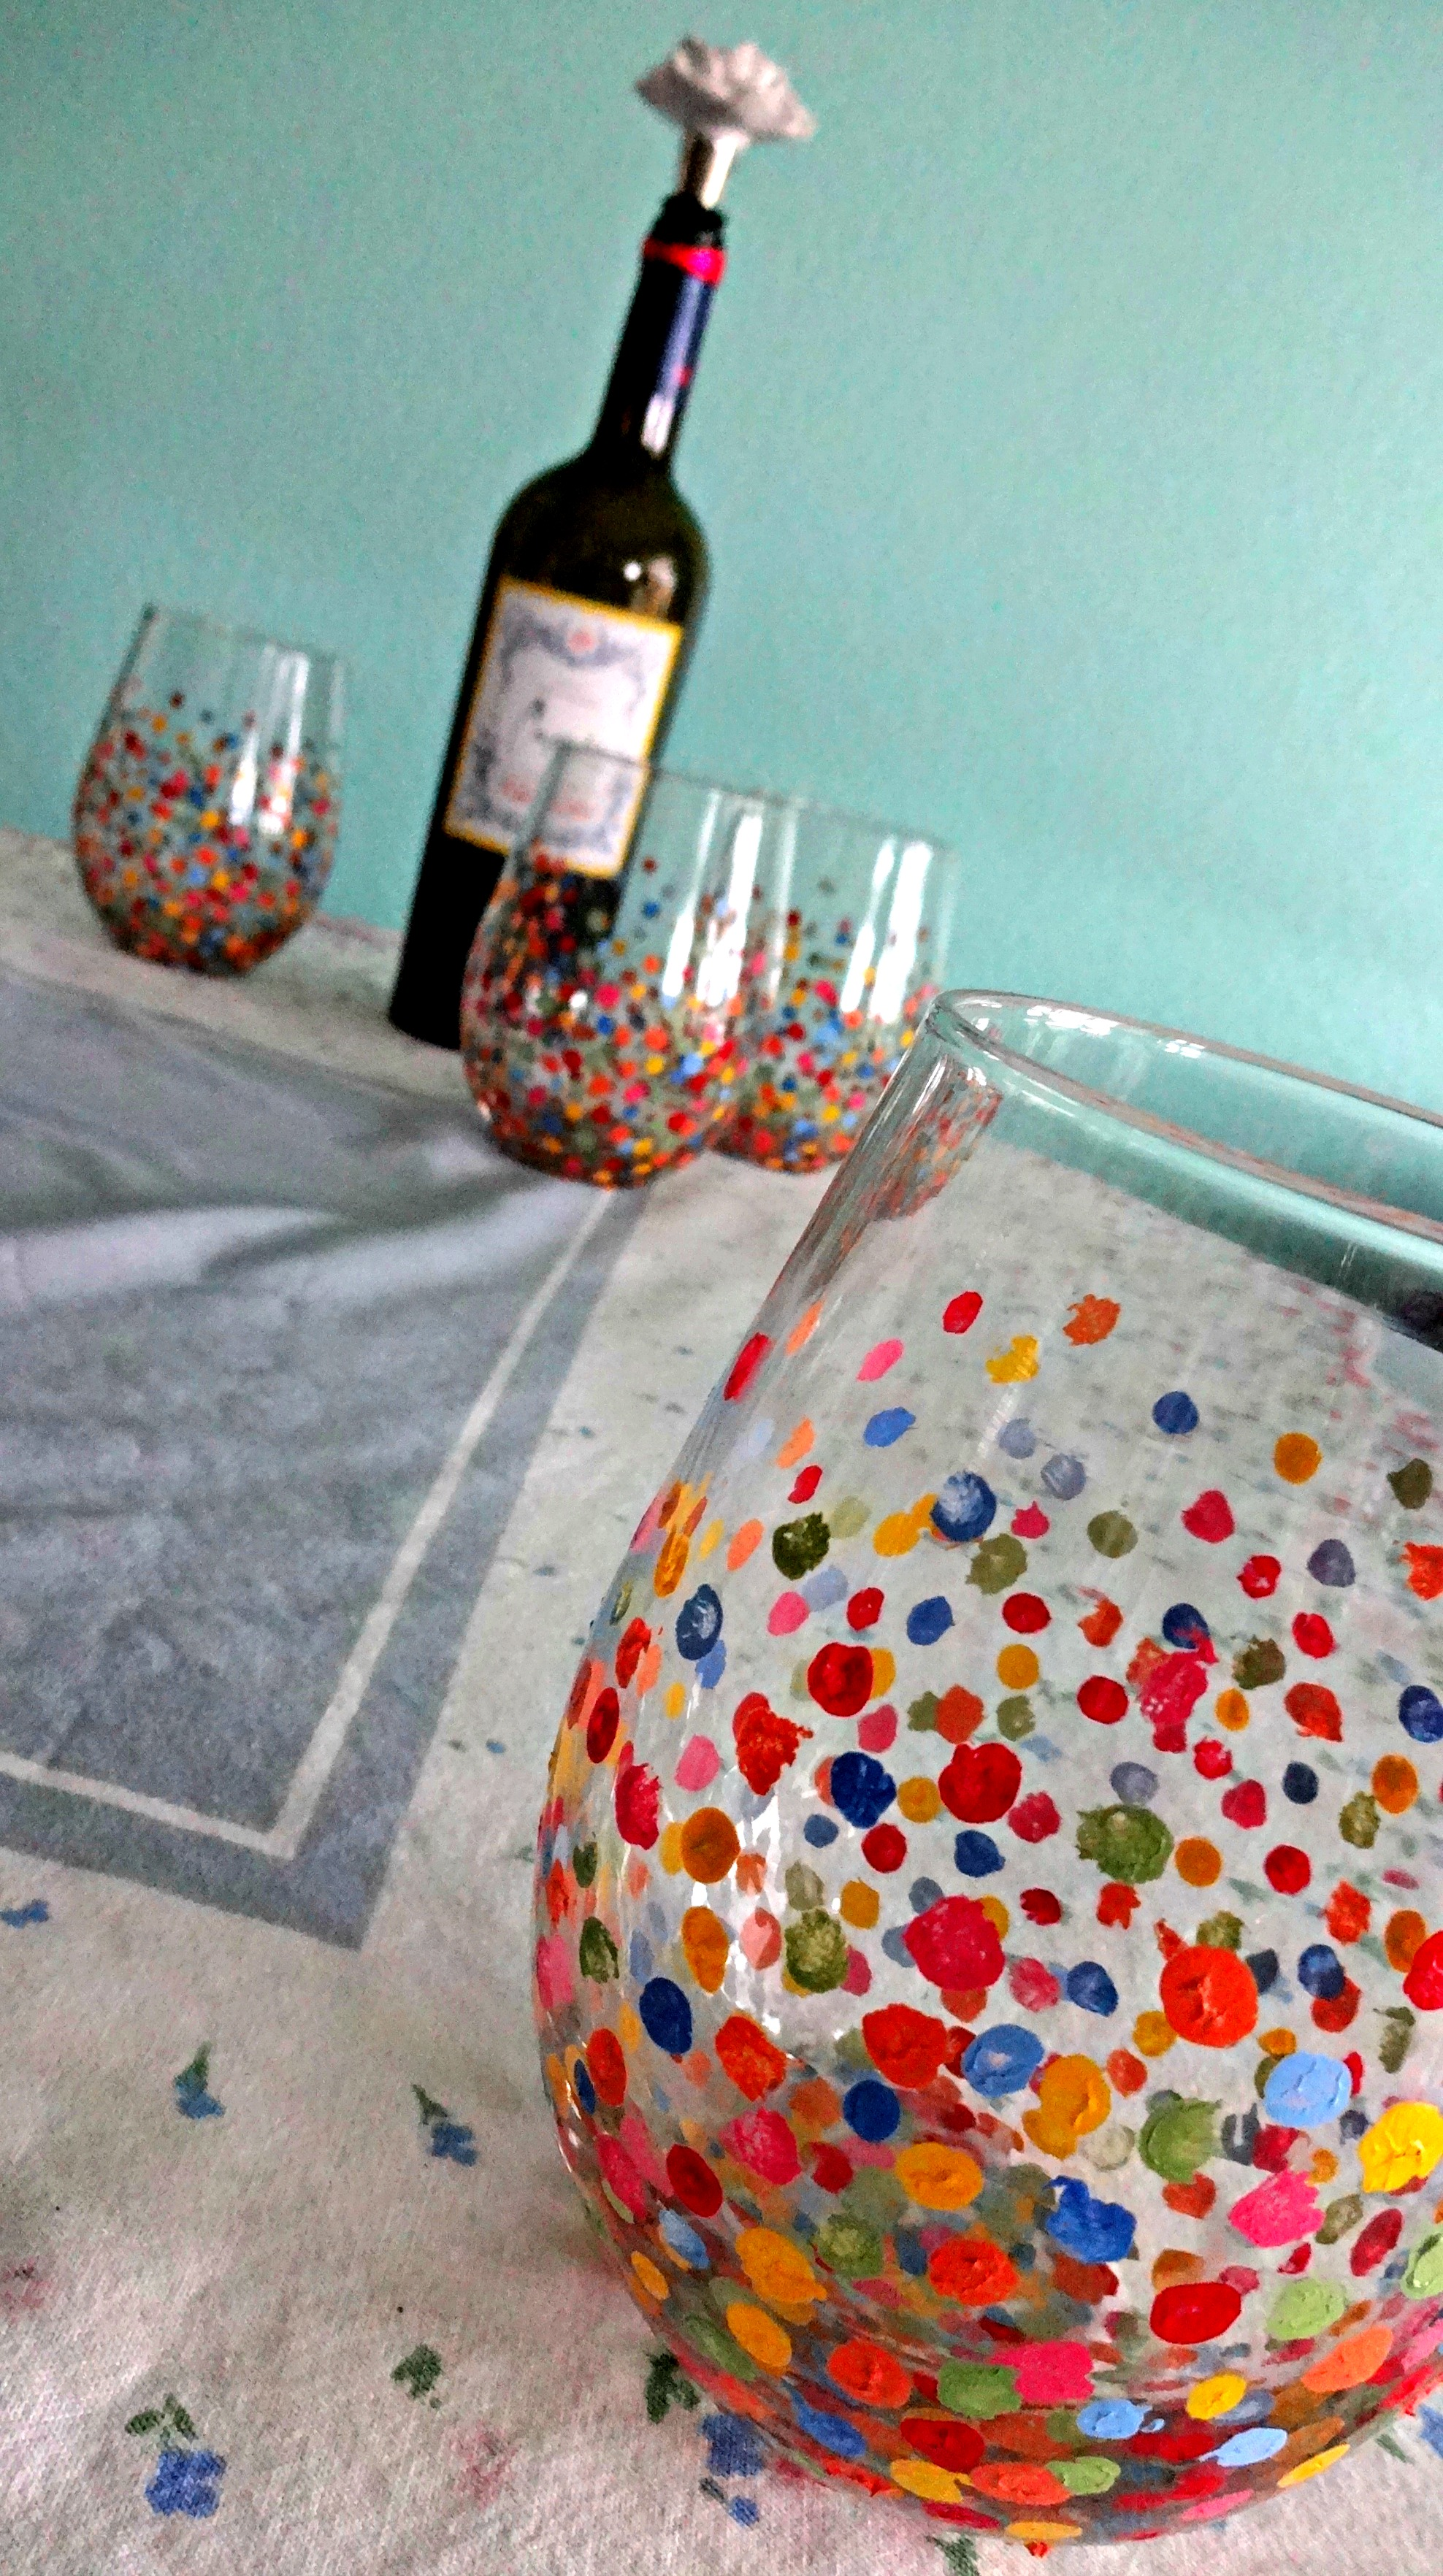 diy painted wine glasses serendipity by sara lynn